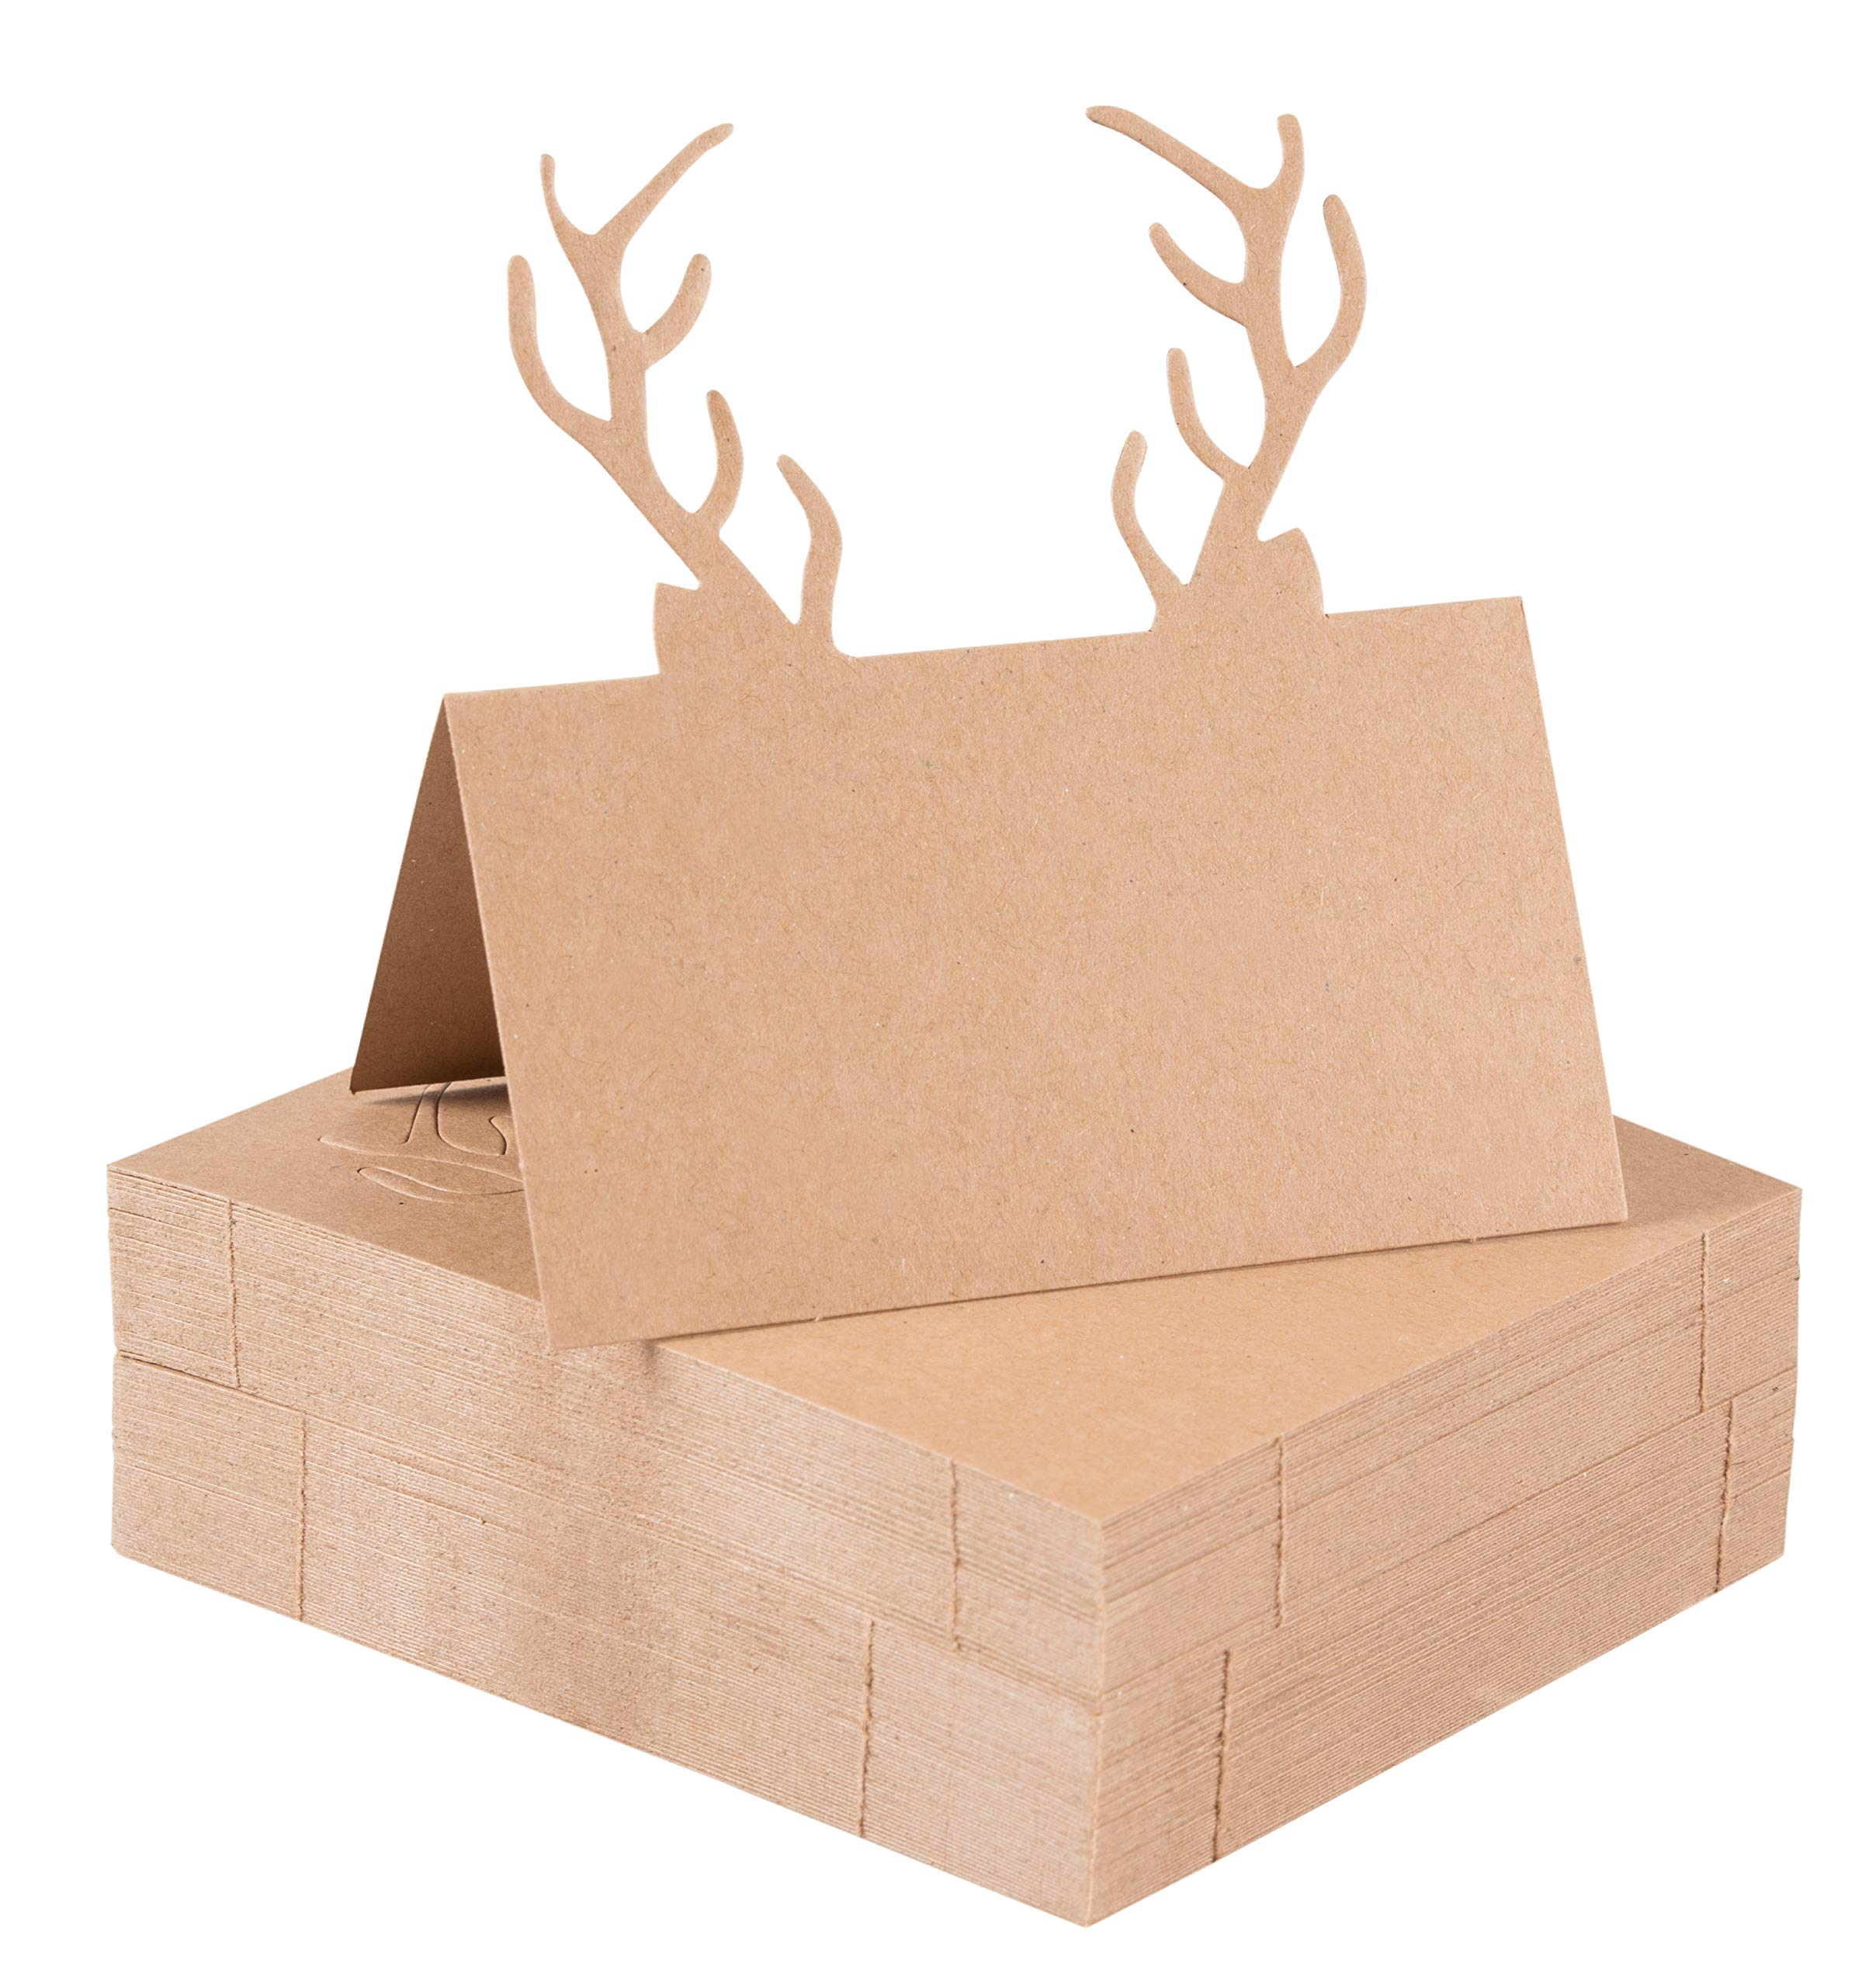 Juvale Christmas Table Place Cards - 50-Pack Kraft Paper Tent Cards with Reindeer Antlers Die Cut Design, Holiday Festive Rustic Dining Table Decoration and Party Supplies, Brown, 2 x 3.5 Inches